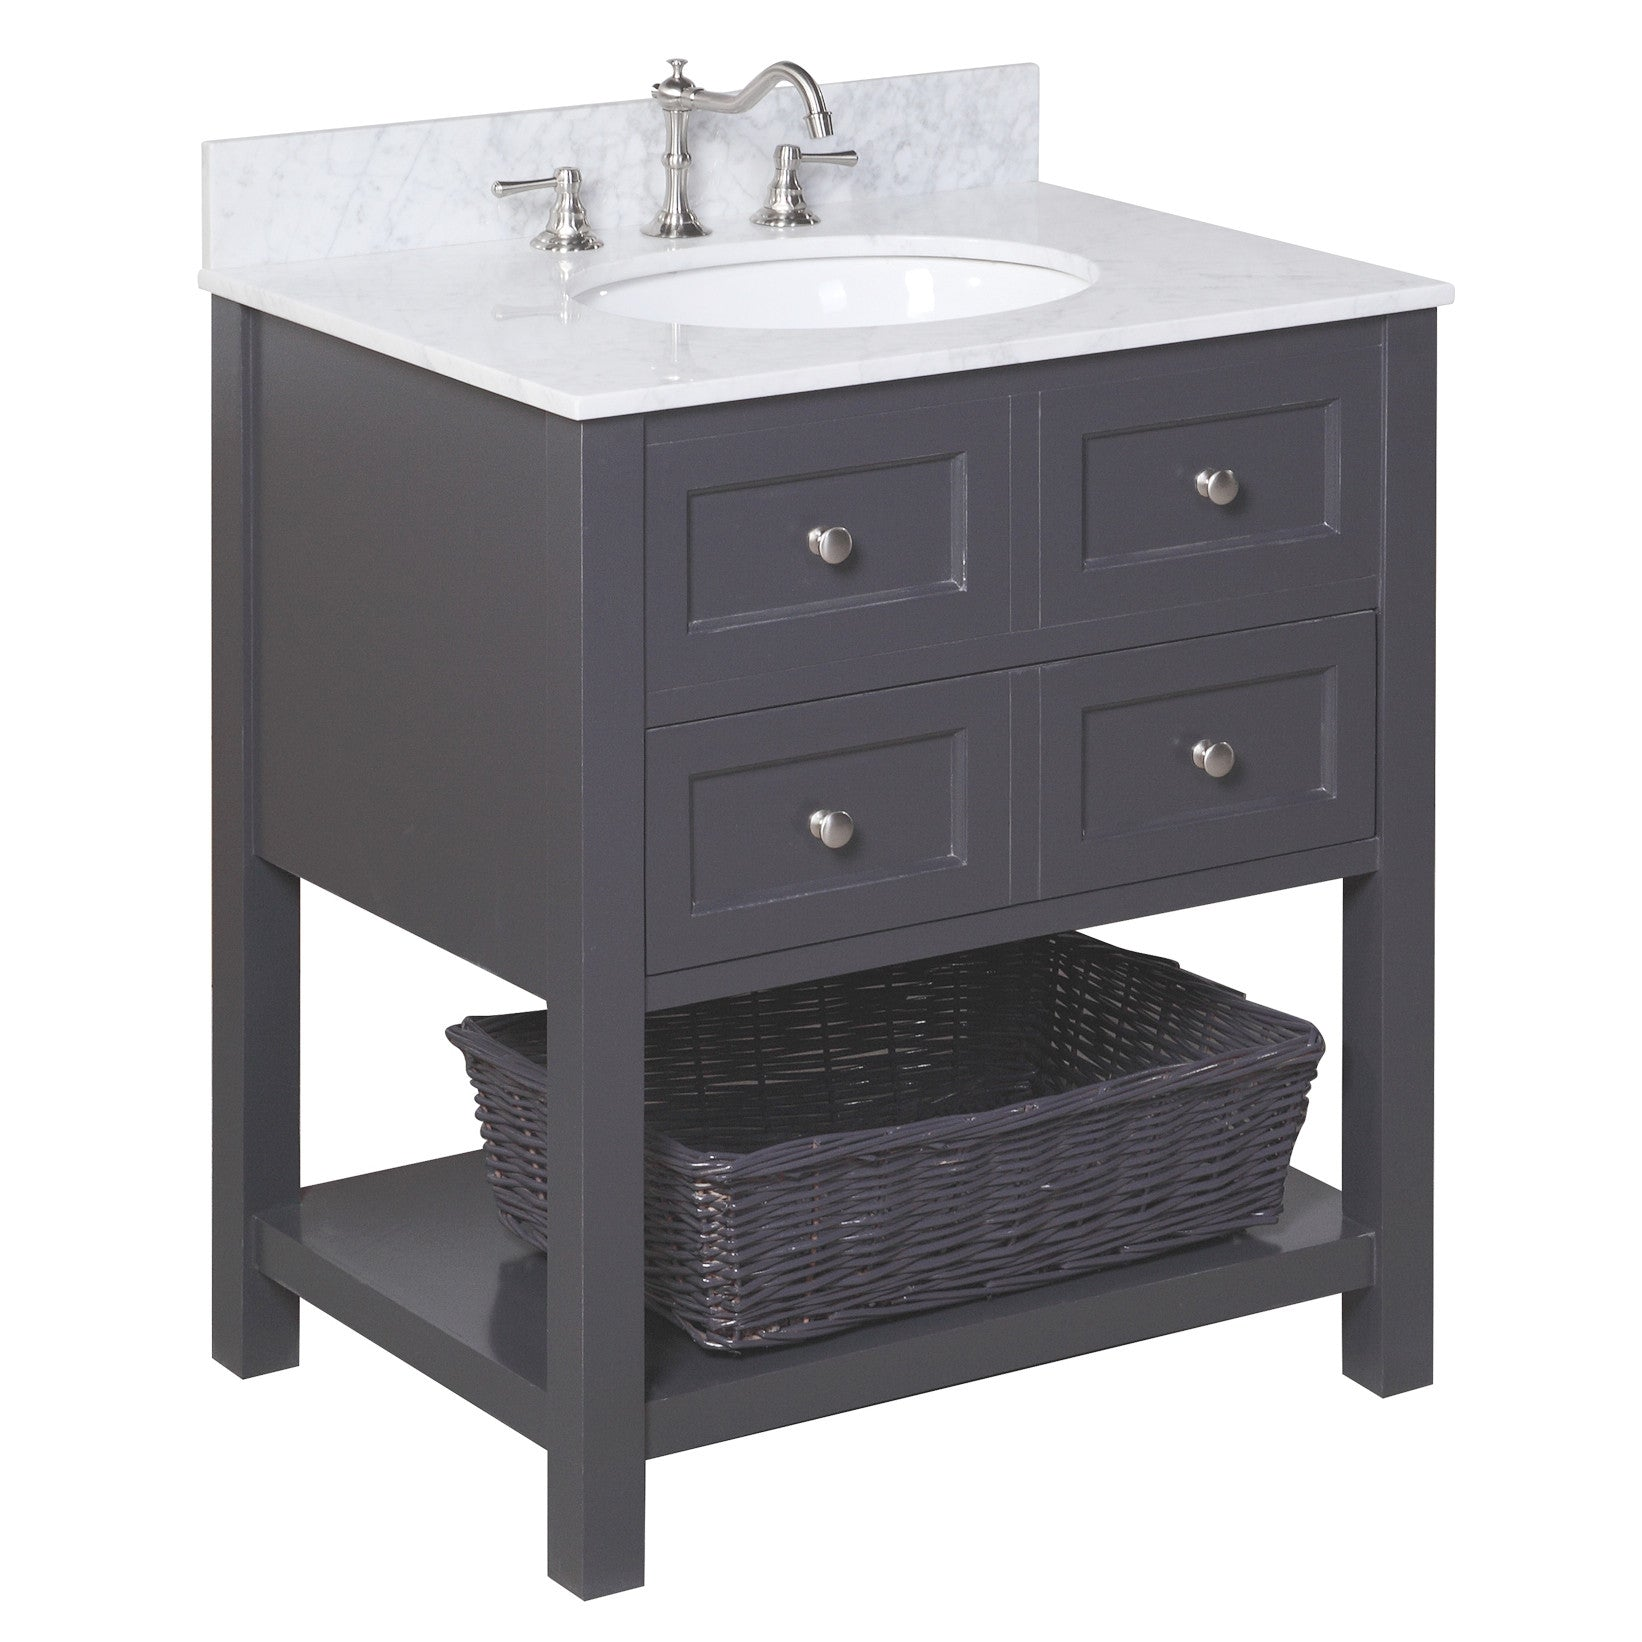 New Yorker 30-inch Vanity (Carrara/Charcoal Gray)